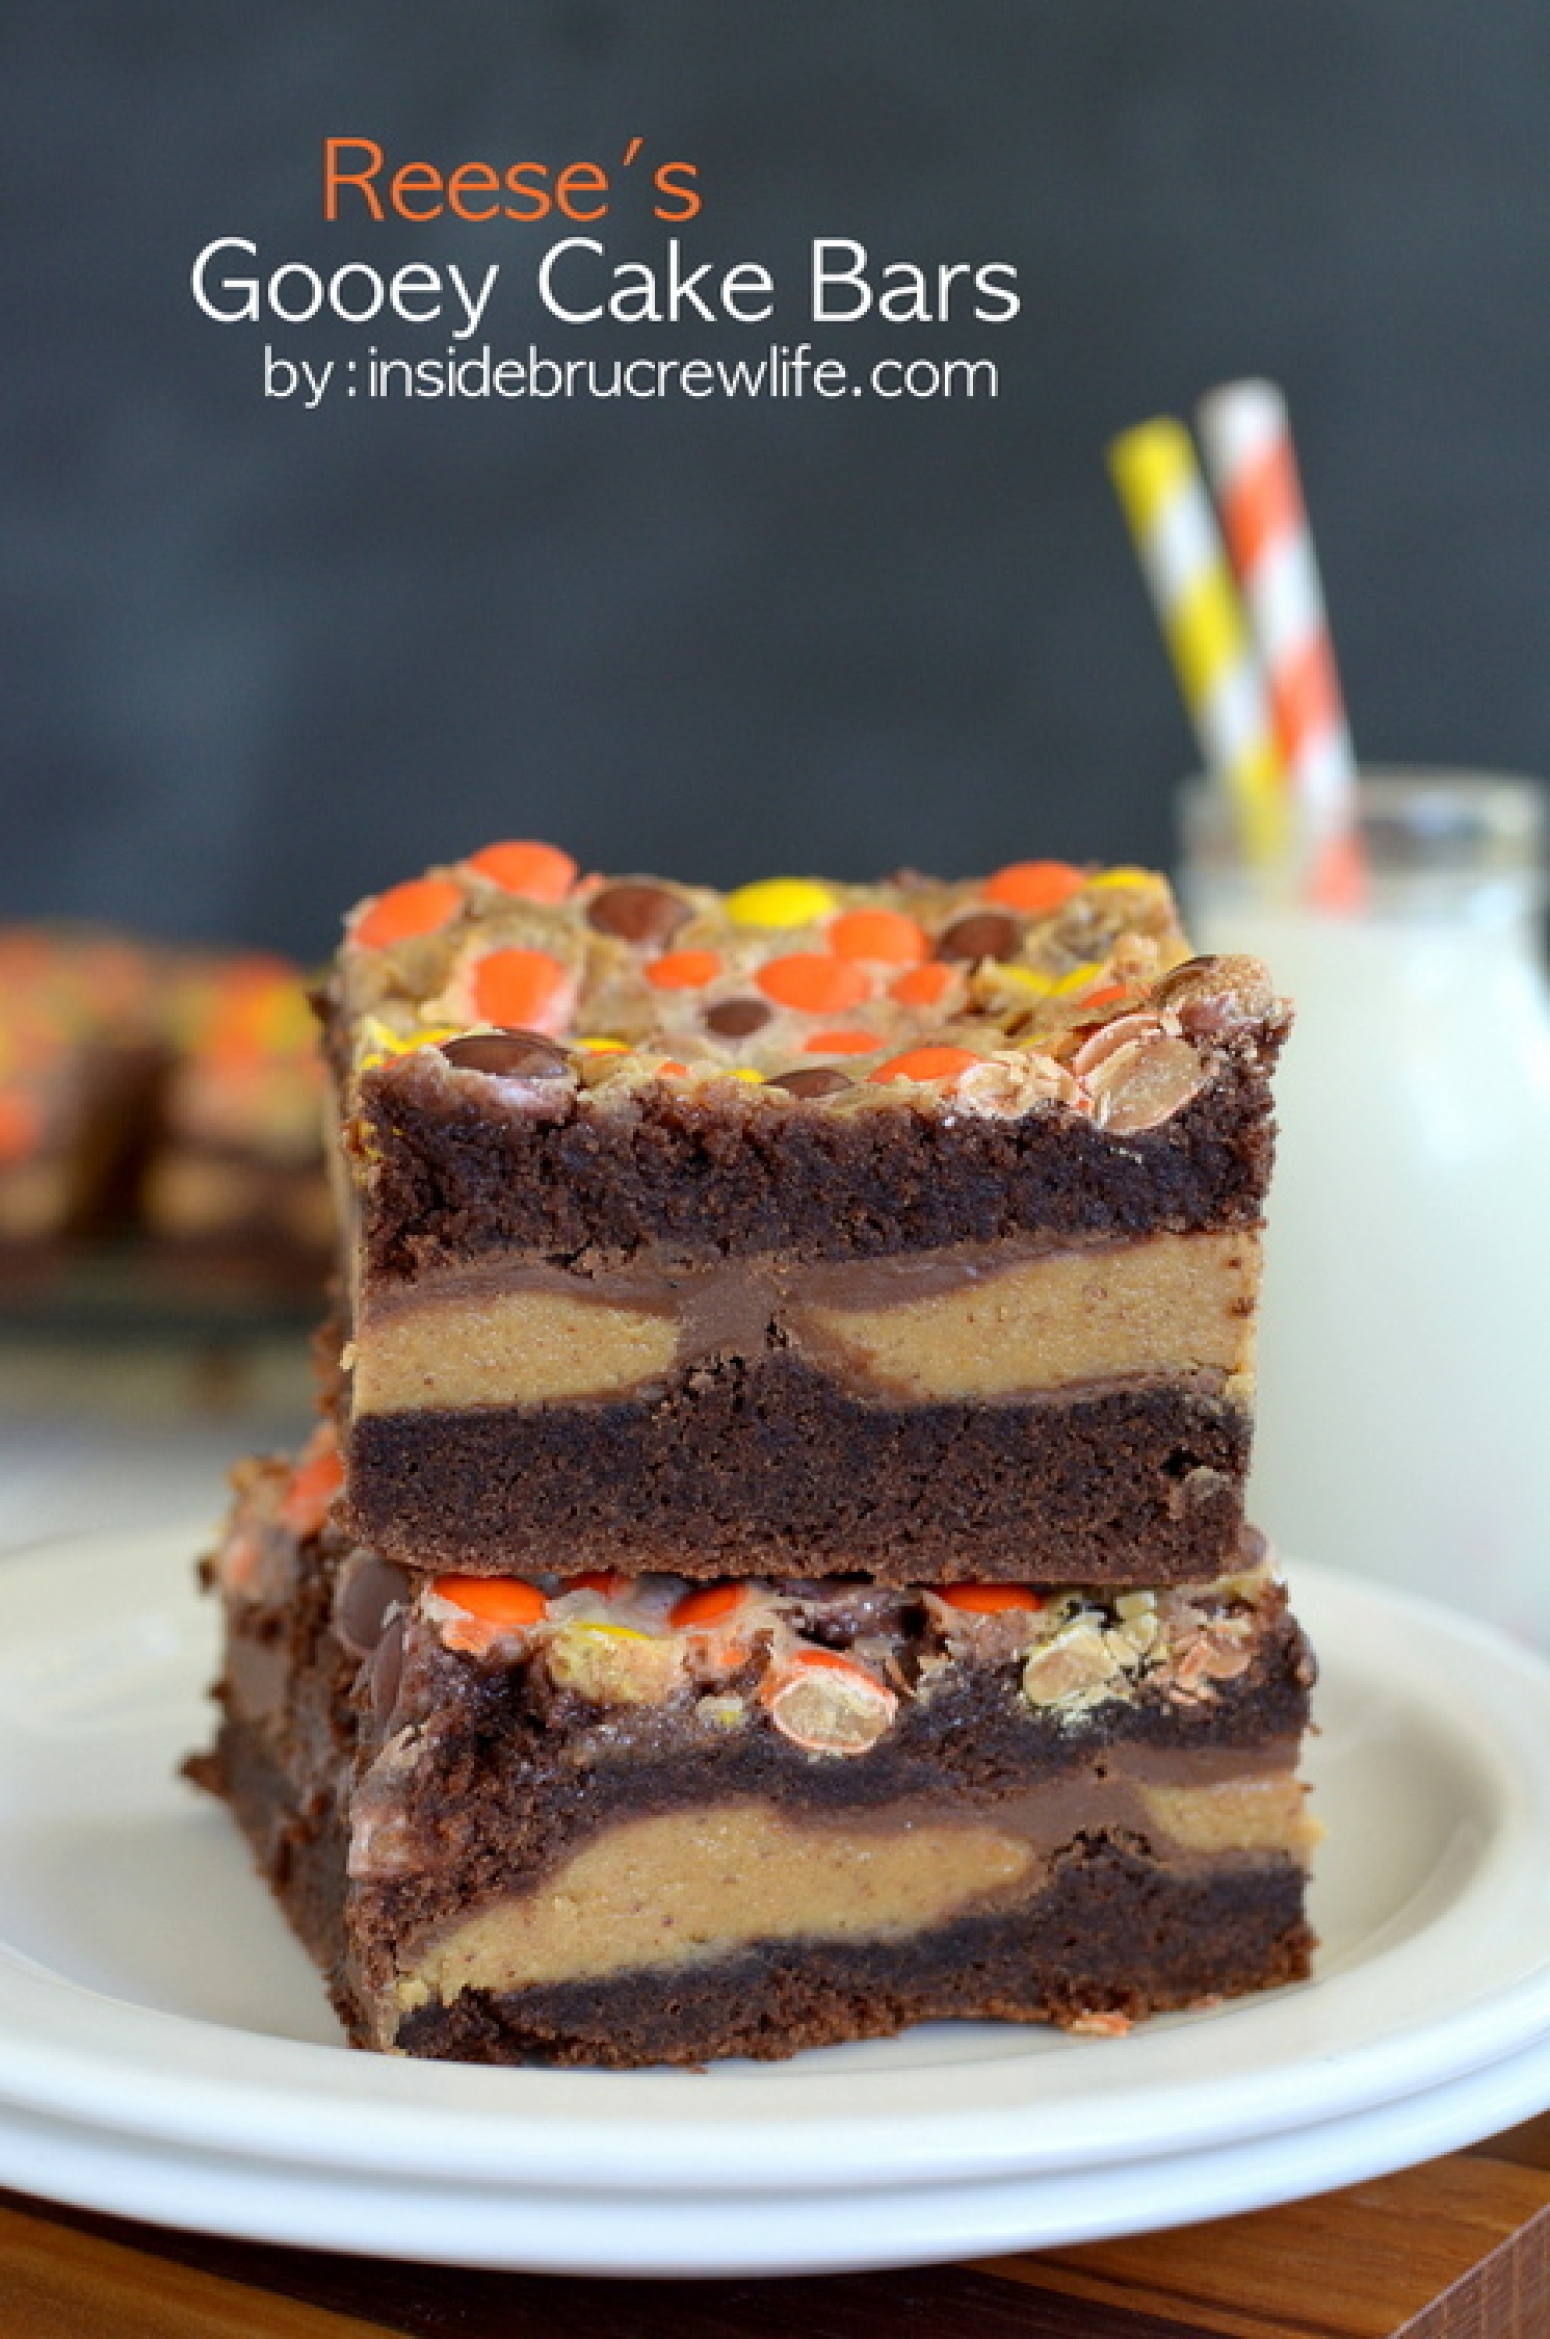 Reeseâ??s Gooey Cake Bars Recipe 6 | Just A Pinch Recipes